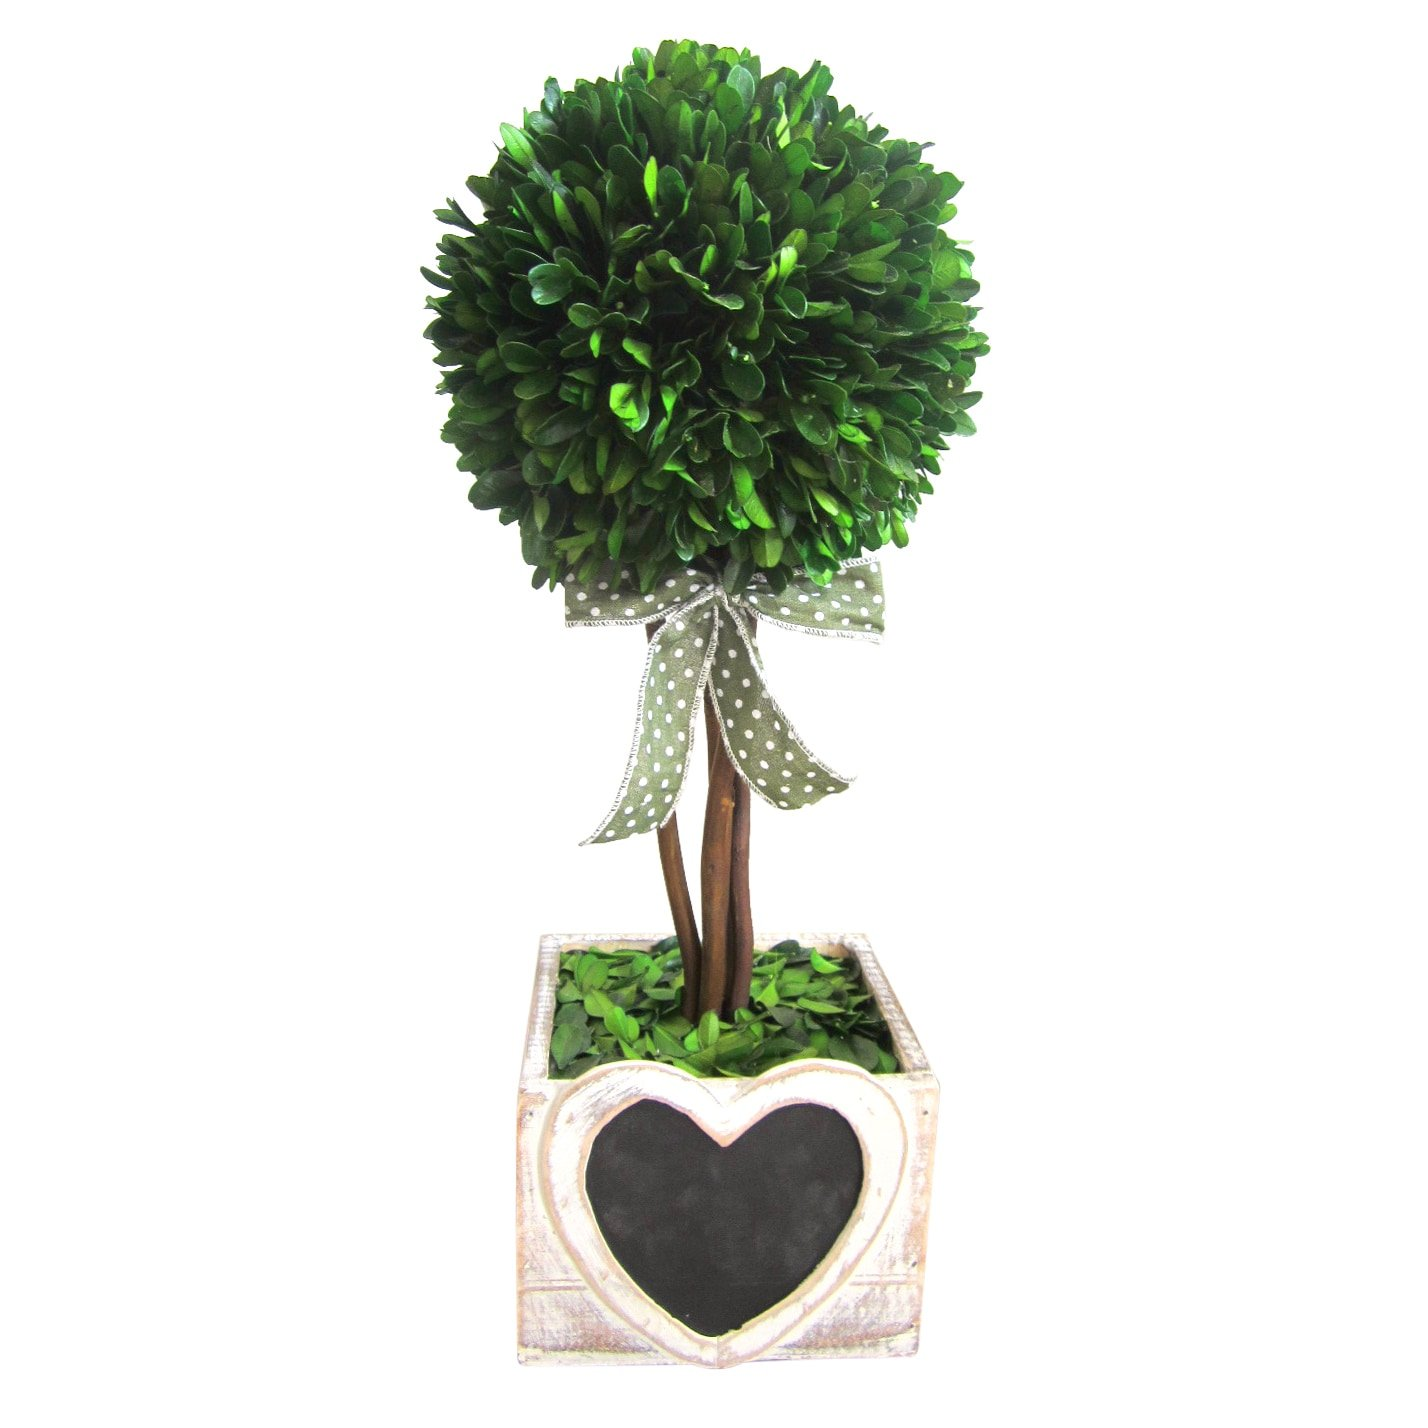 Jeco 16-inch Preserved Boxwood Pot with Heart Wood Box by Jeco Inc. (Image #1)